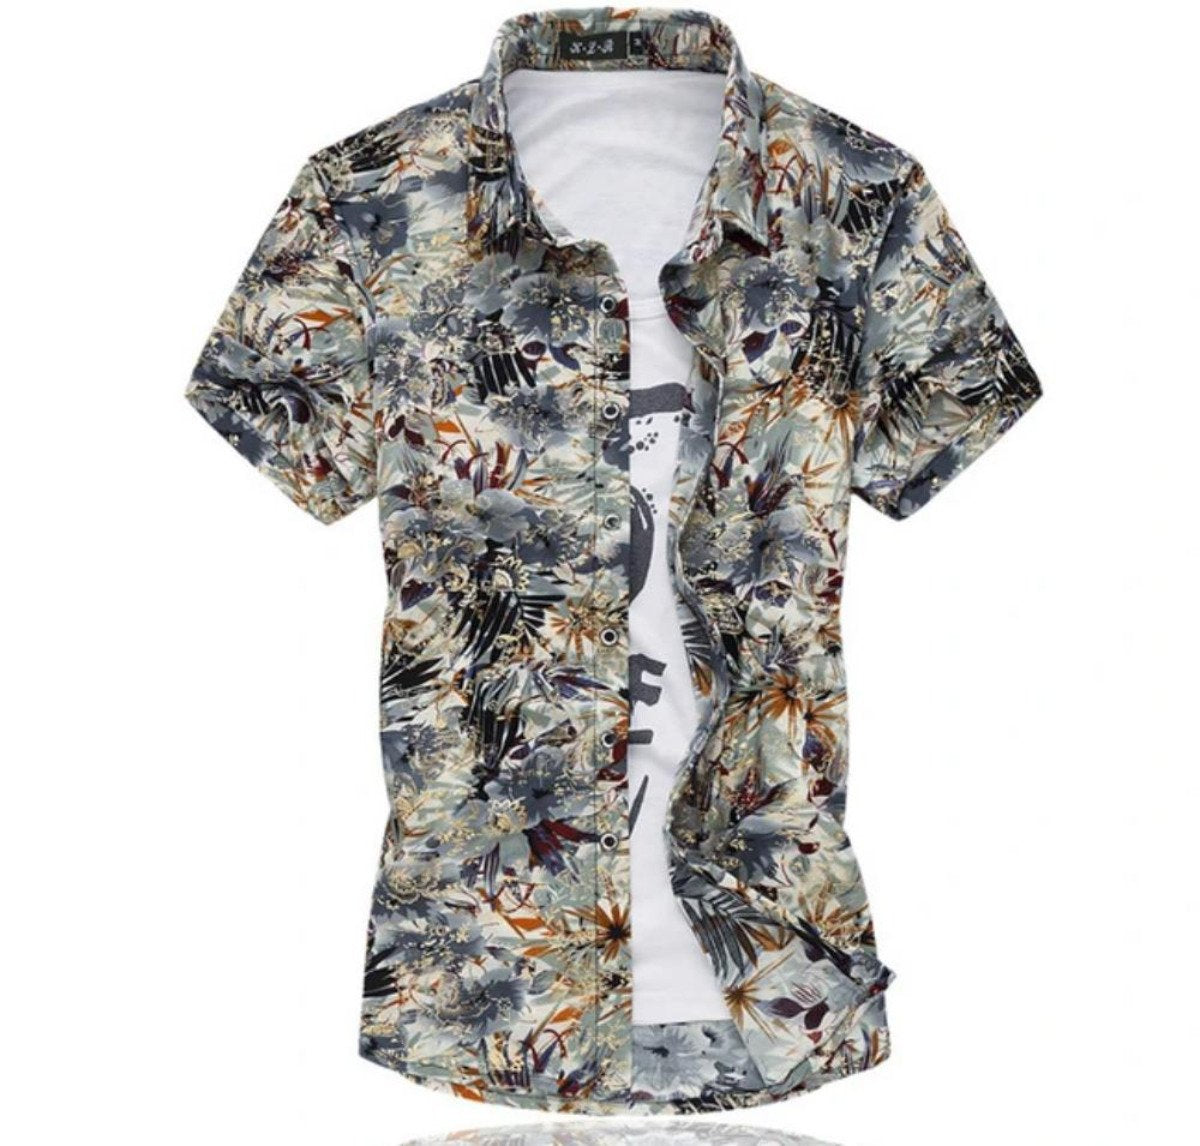 Mens Artistic Print Button Front Short Sleeve Shirt